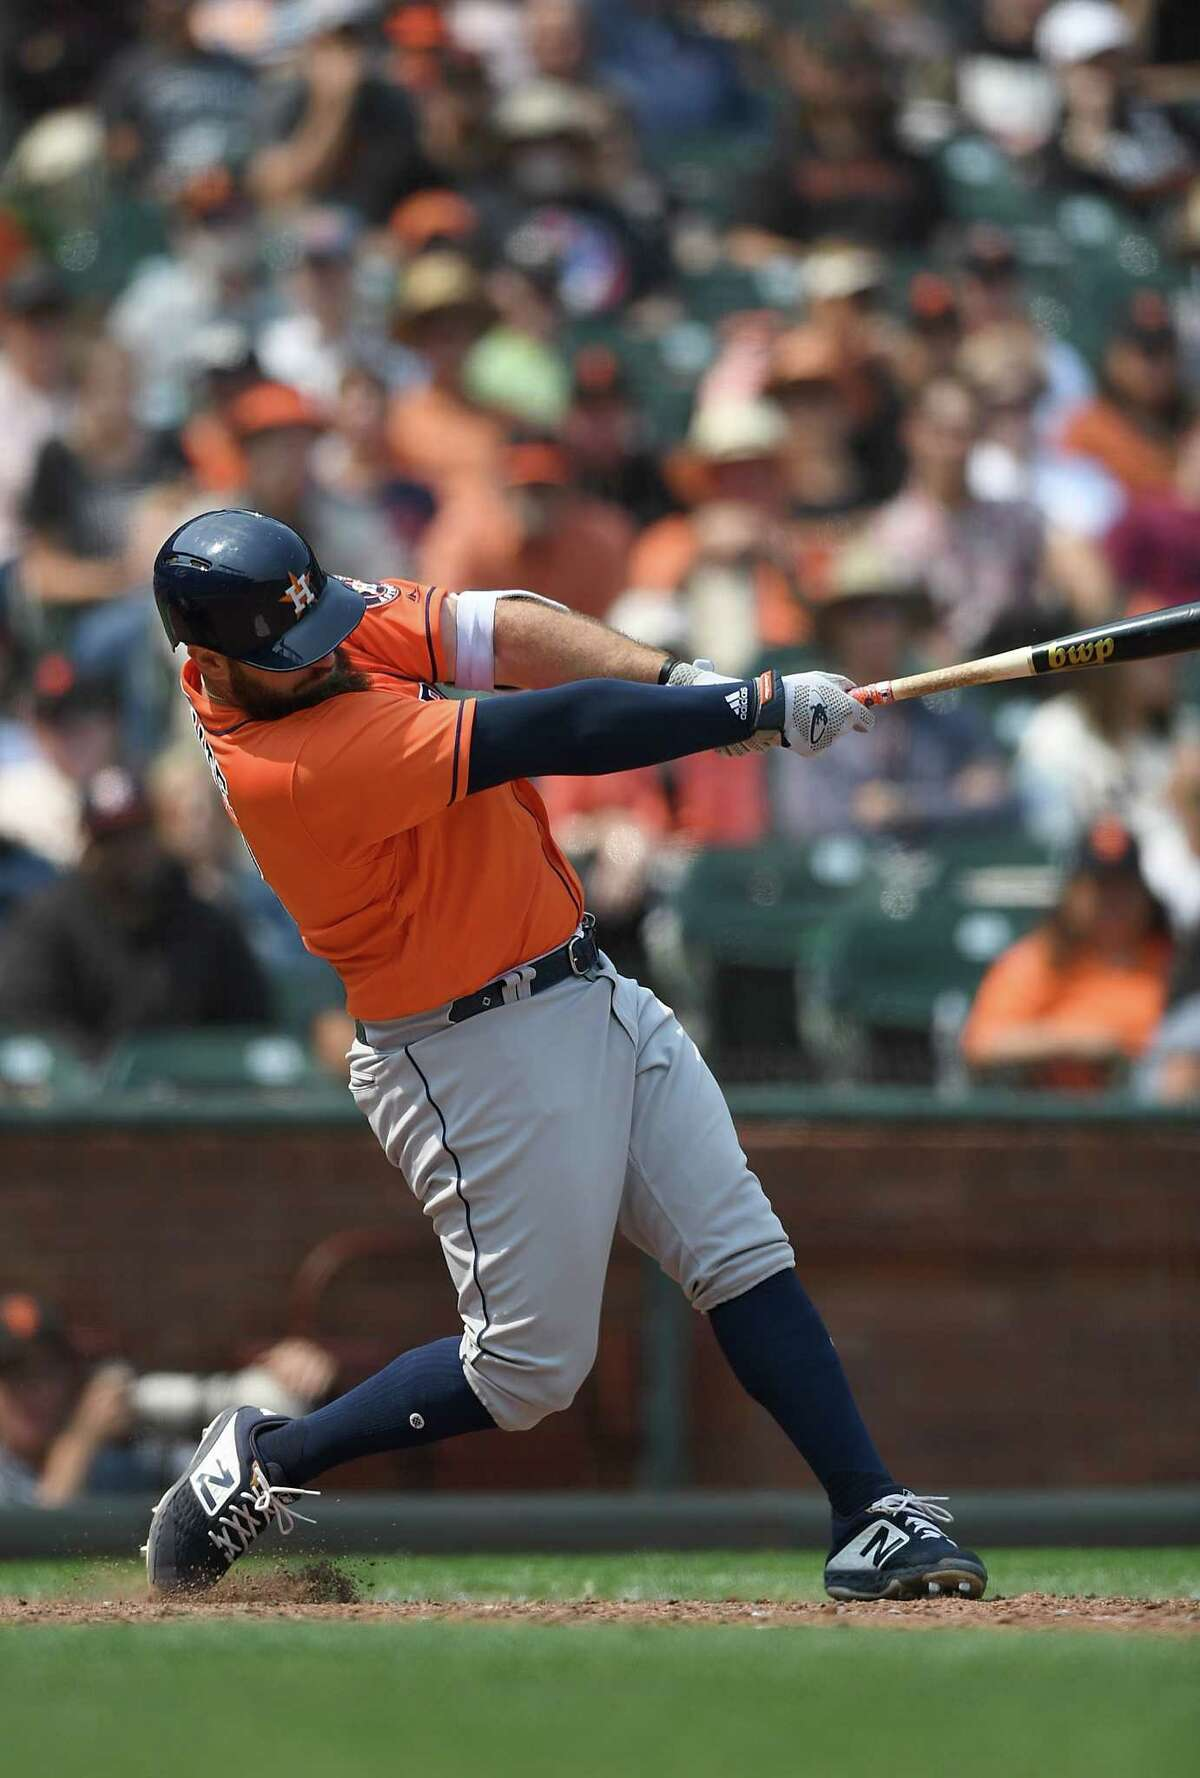 SAN FRANCISCO, CA - AUGUST 07: Tyler White #13 of the Houston Astros hits a two-run home run against the San Francisco Giants in the top of the eighth inning at AT&T Park on August 7, 2018 in San Francisco, California.